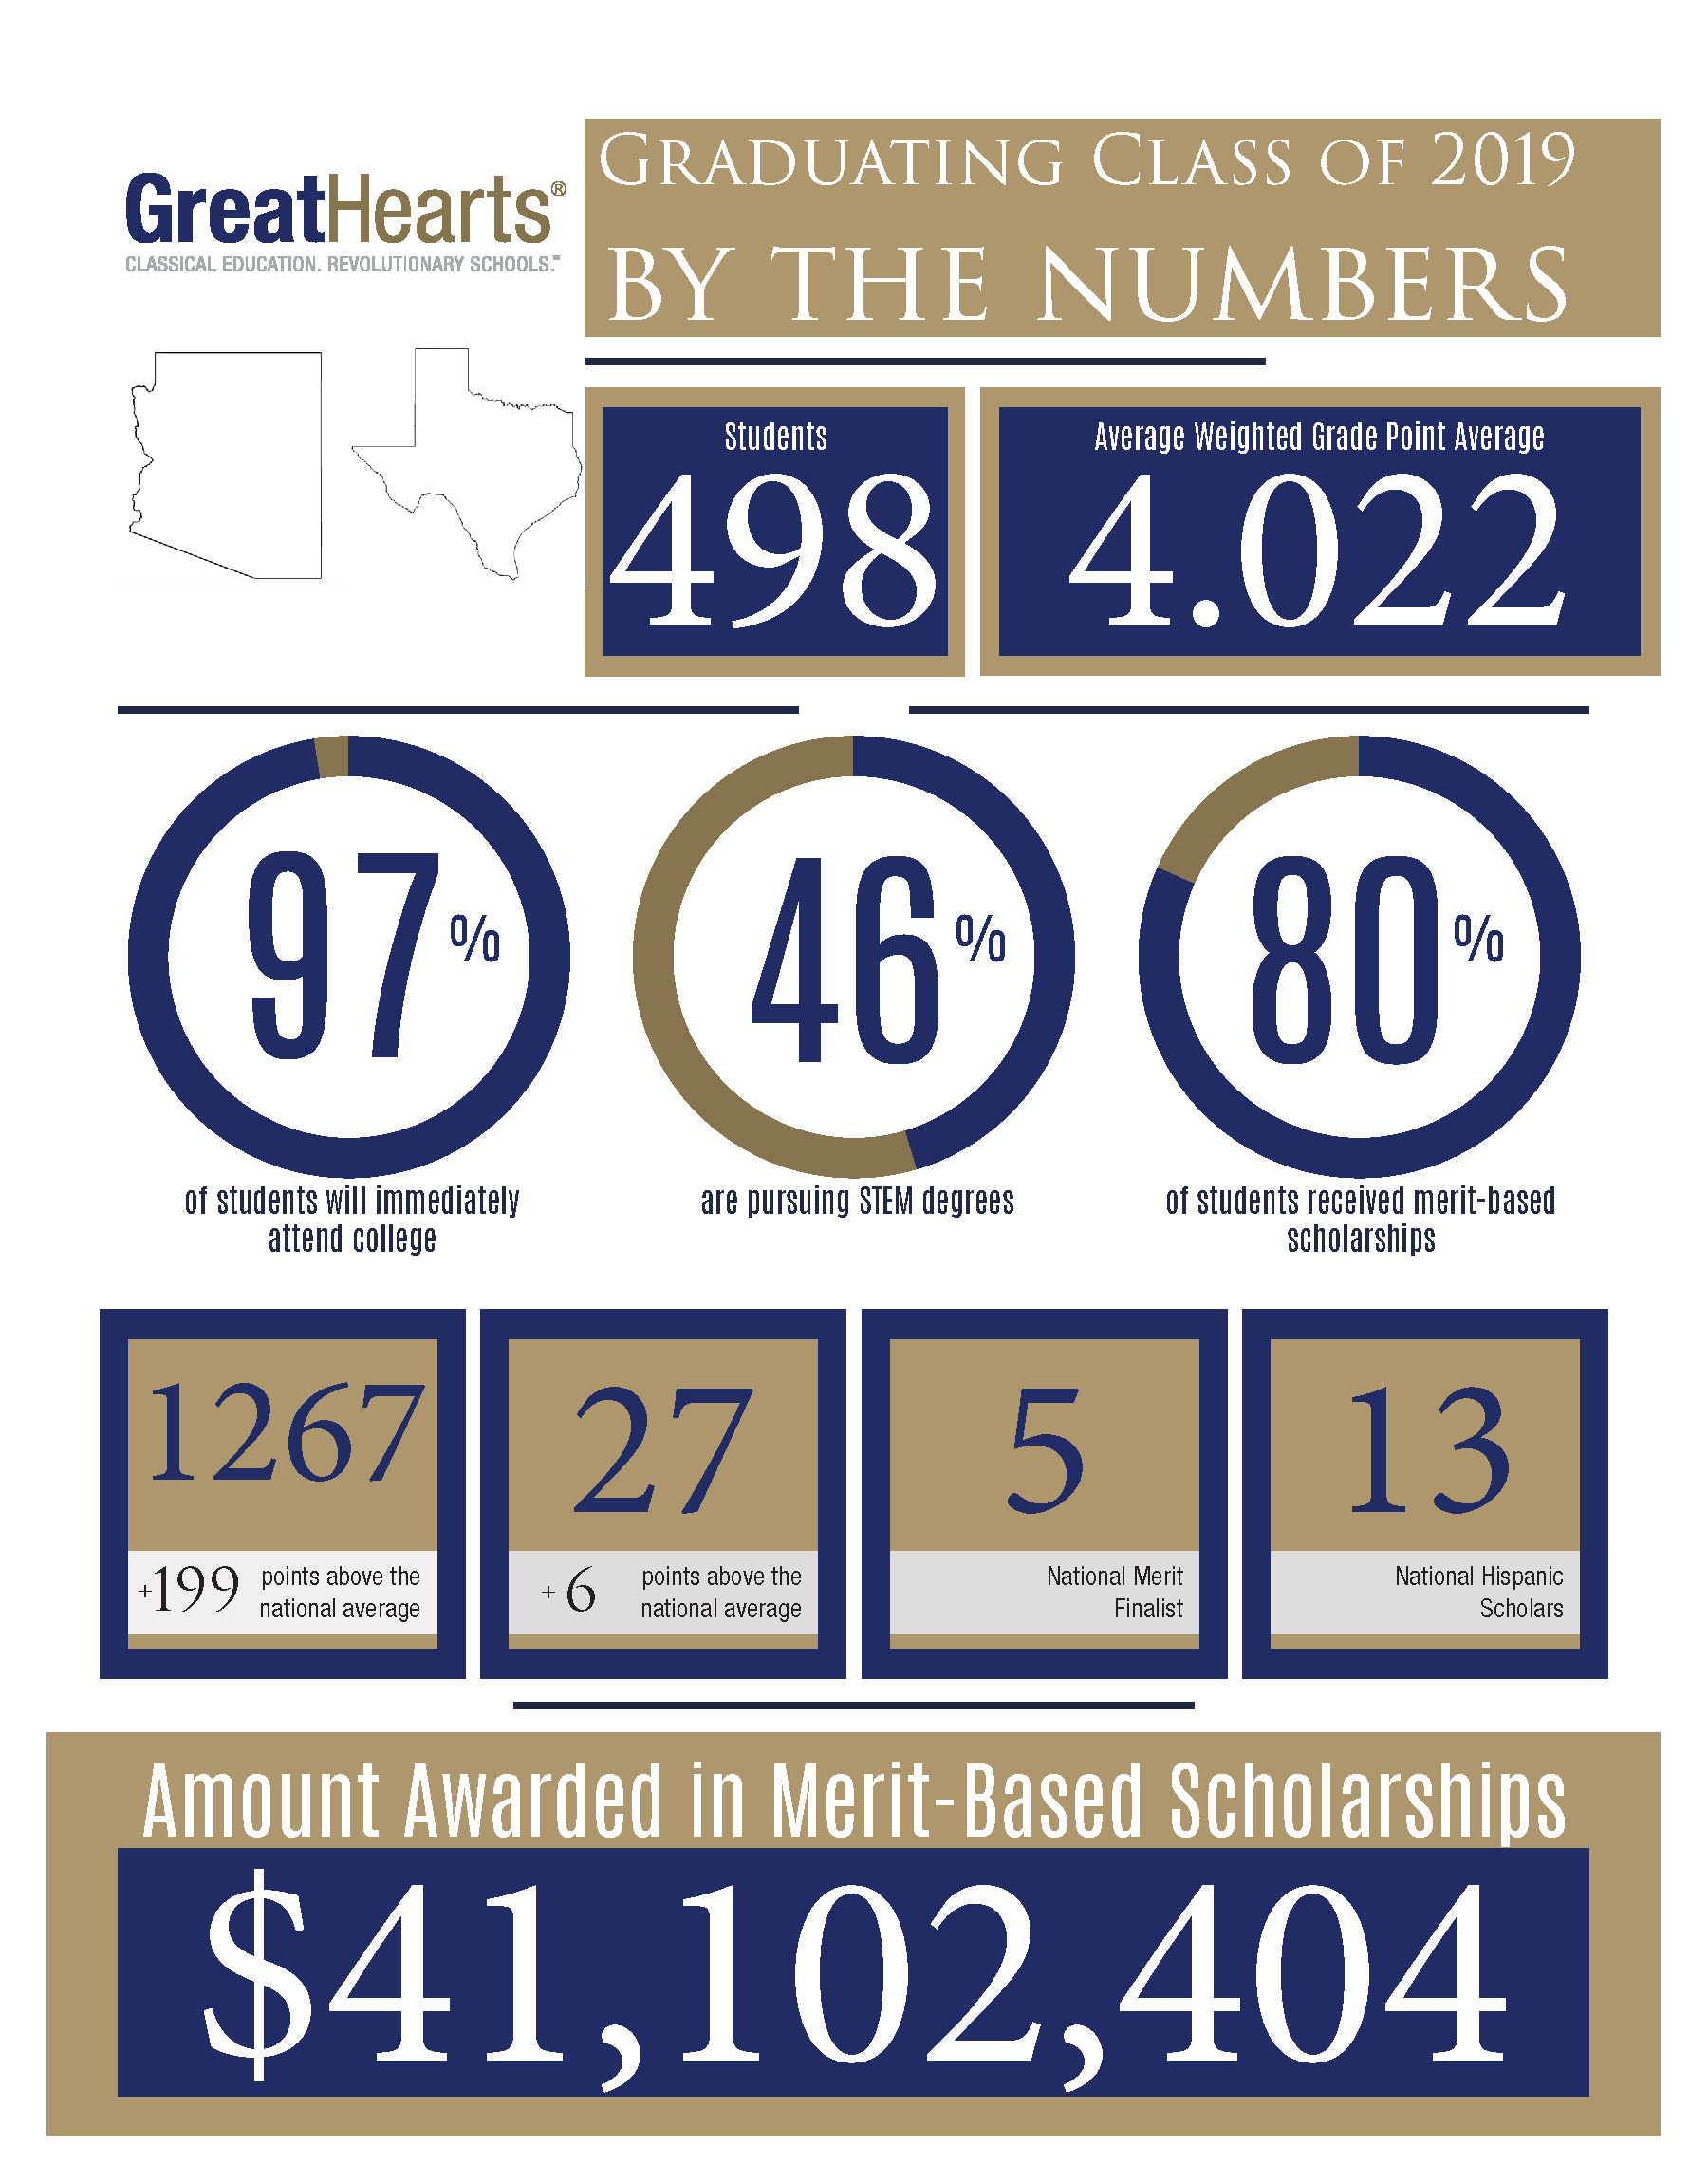 info graphic, 41 million in scholarships